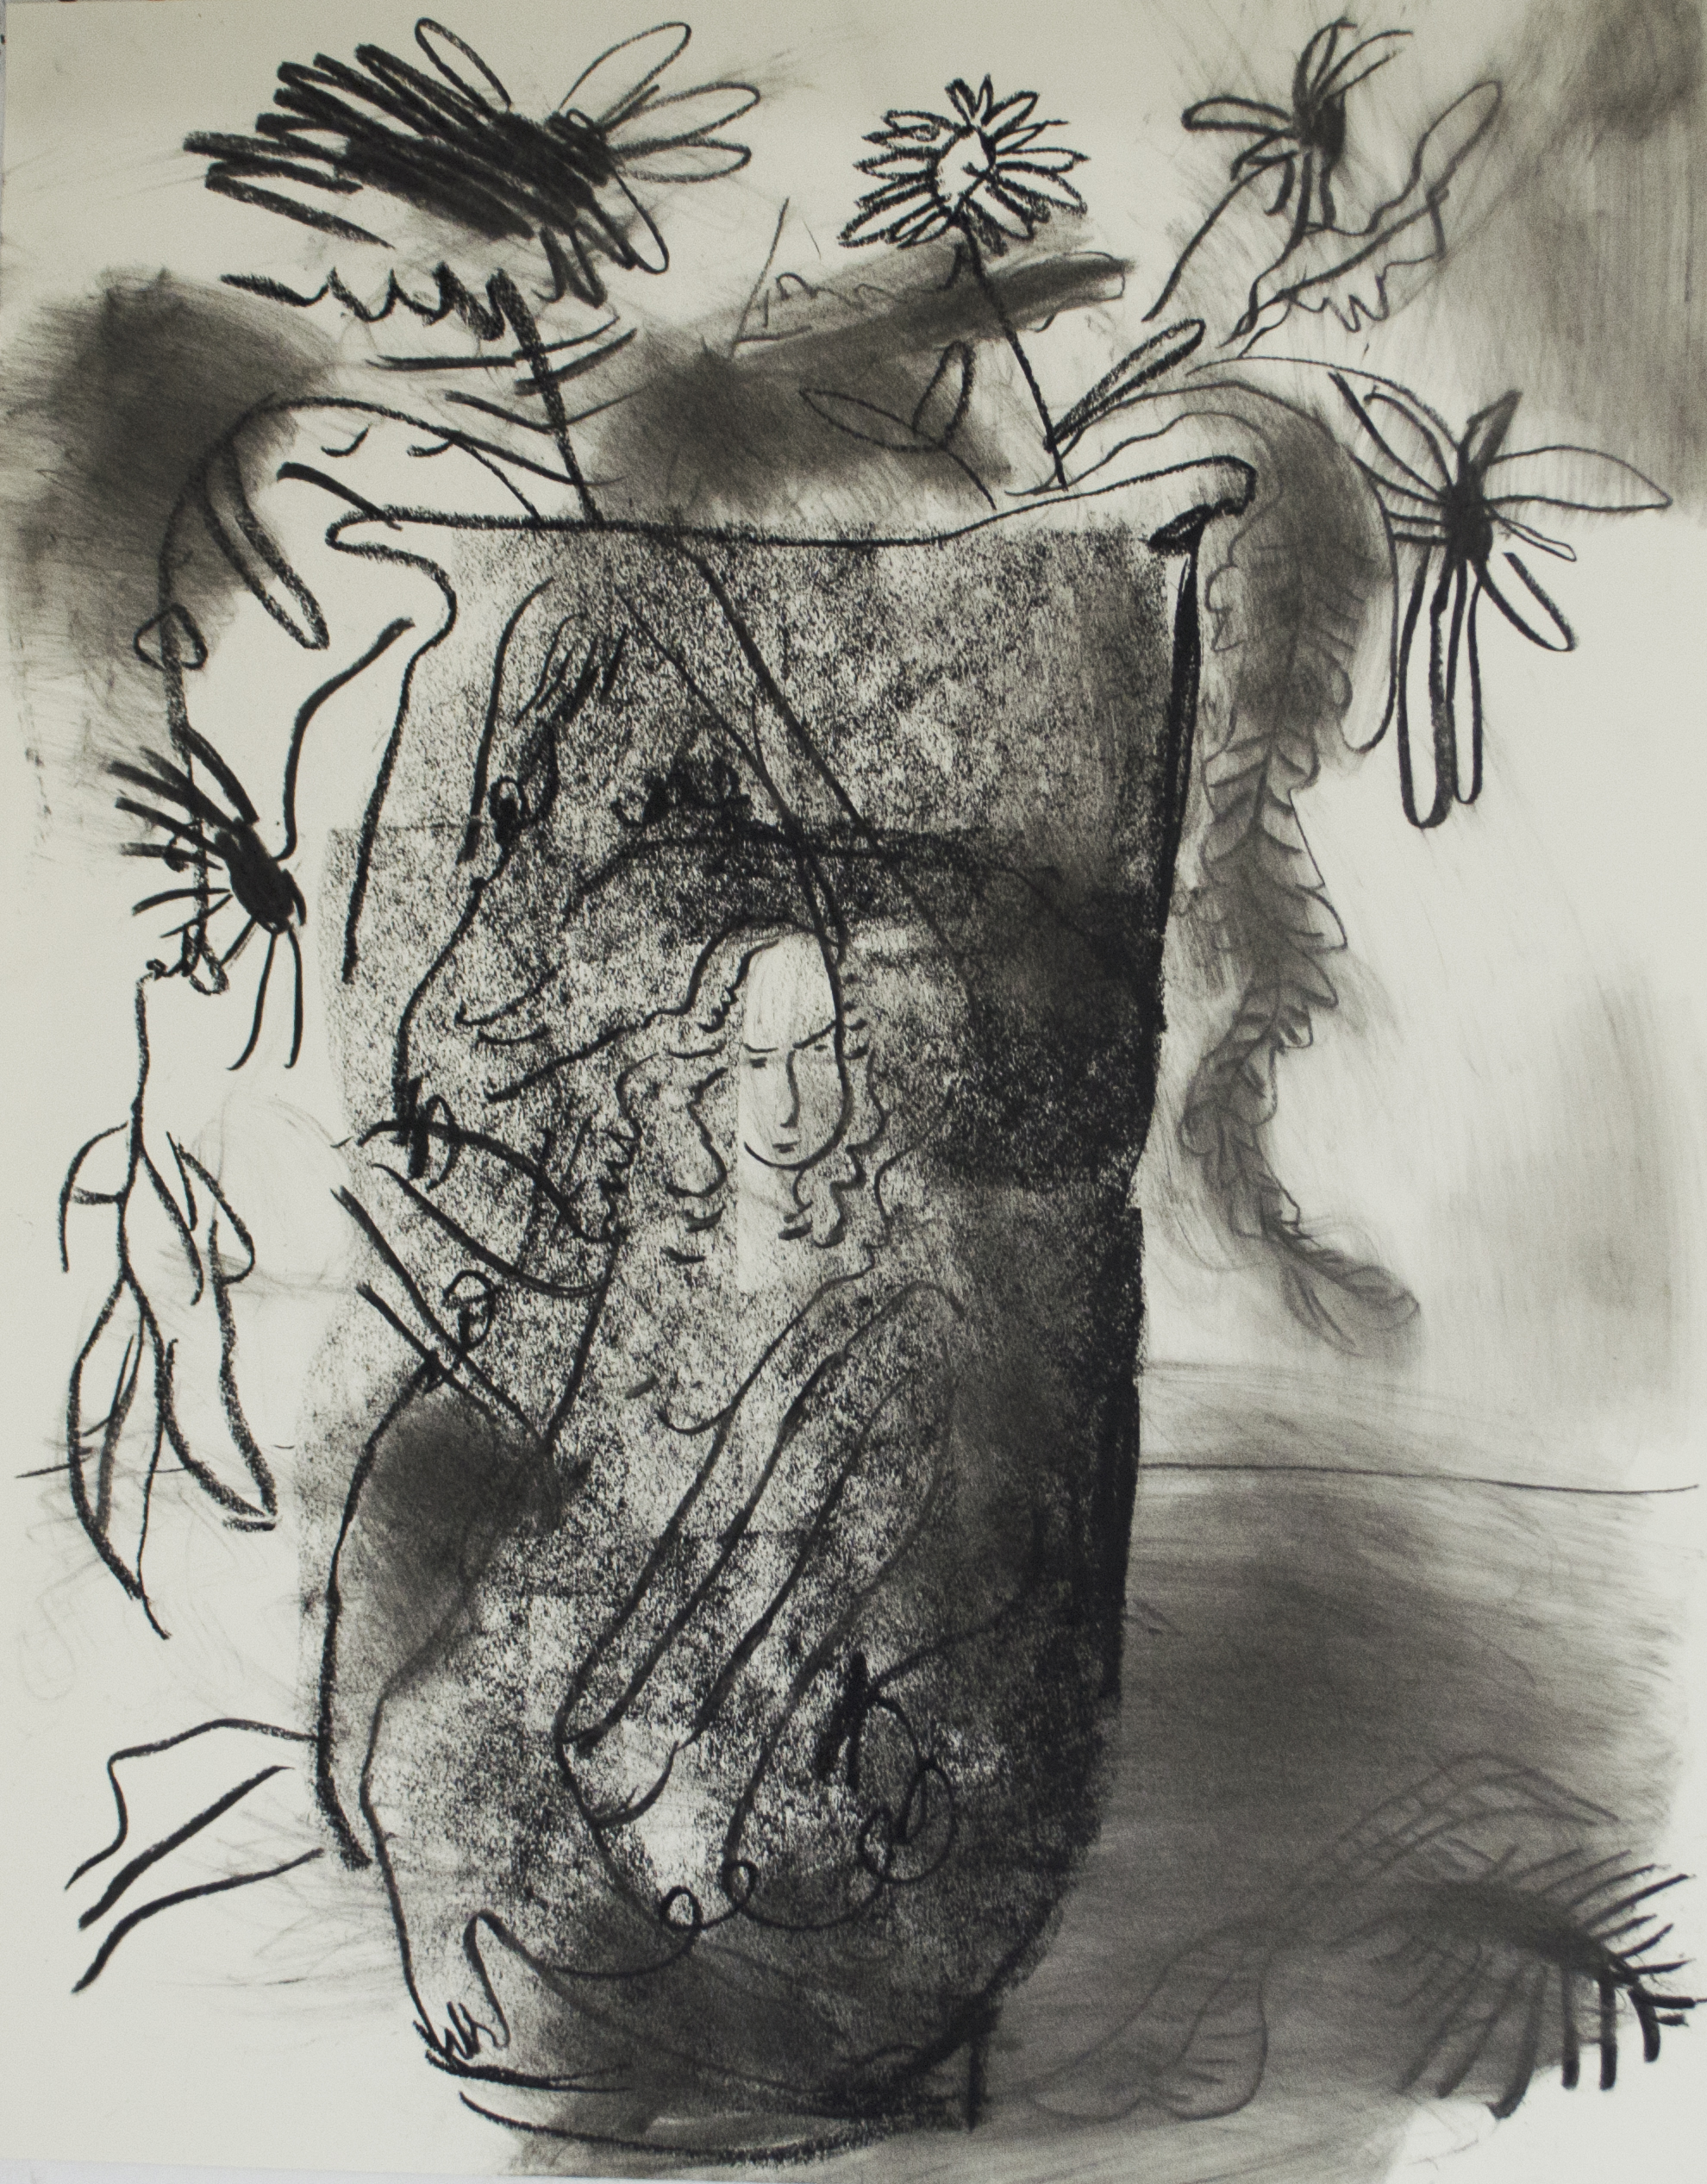 Untitled, 22x30 inches, charcoal on paper, 2017. (04.041.CHA) Produced in the spring in Colorado.  © Courtesy of Jasmine Little.  In private collection.